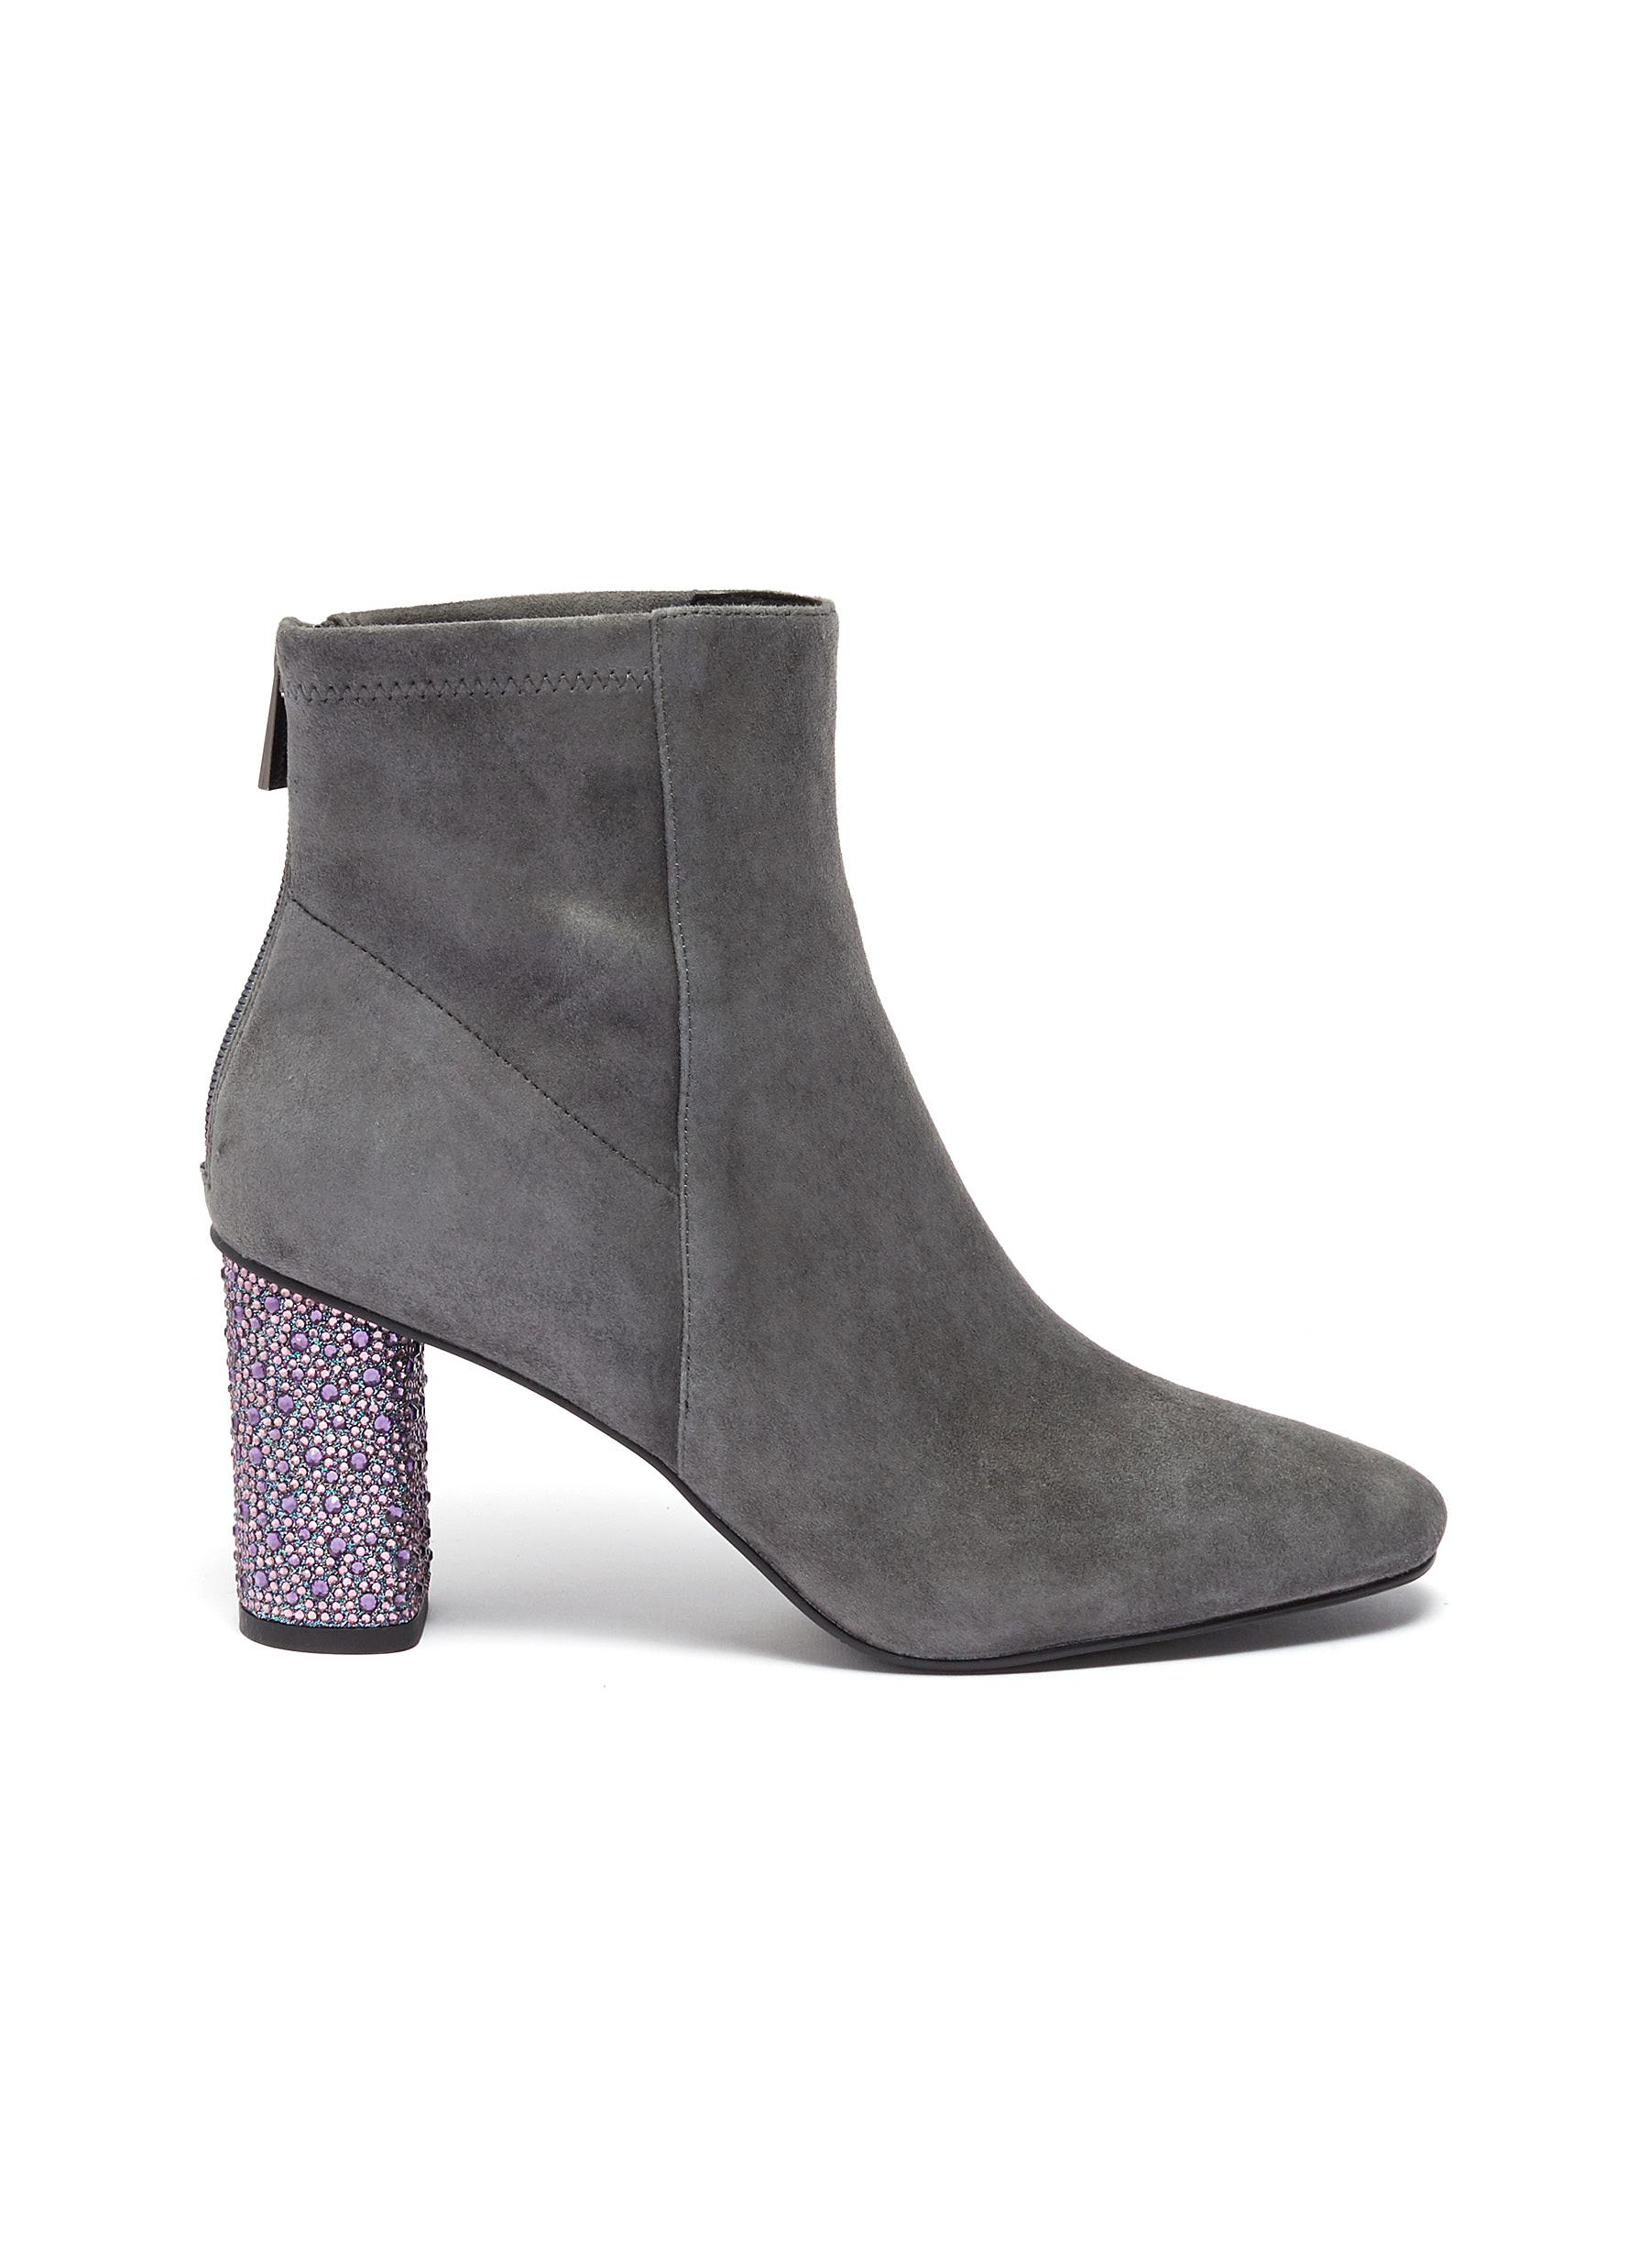 Billy strass heel stretch suede ankle boots by Pedder Red